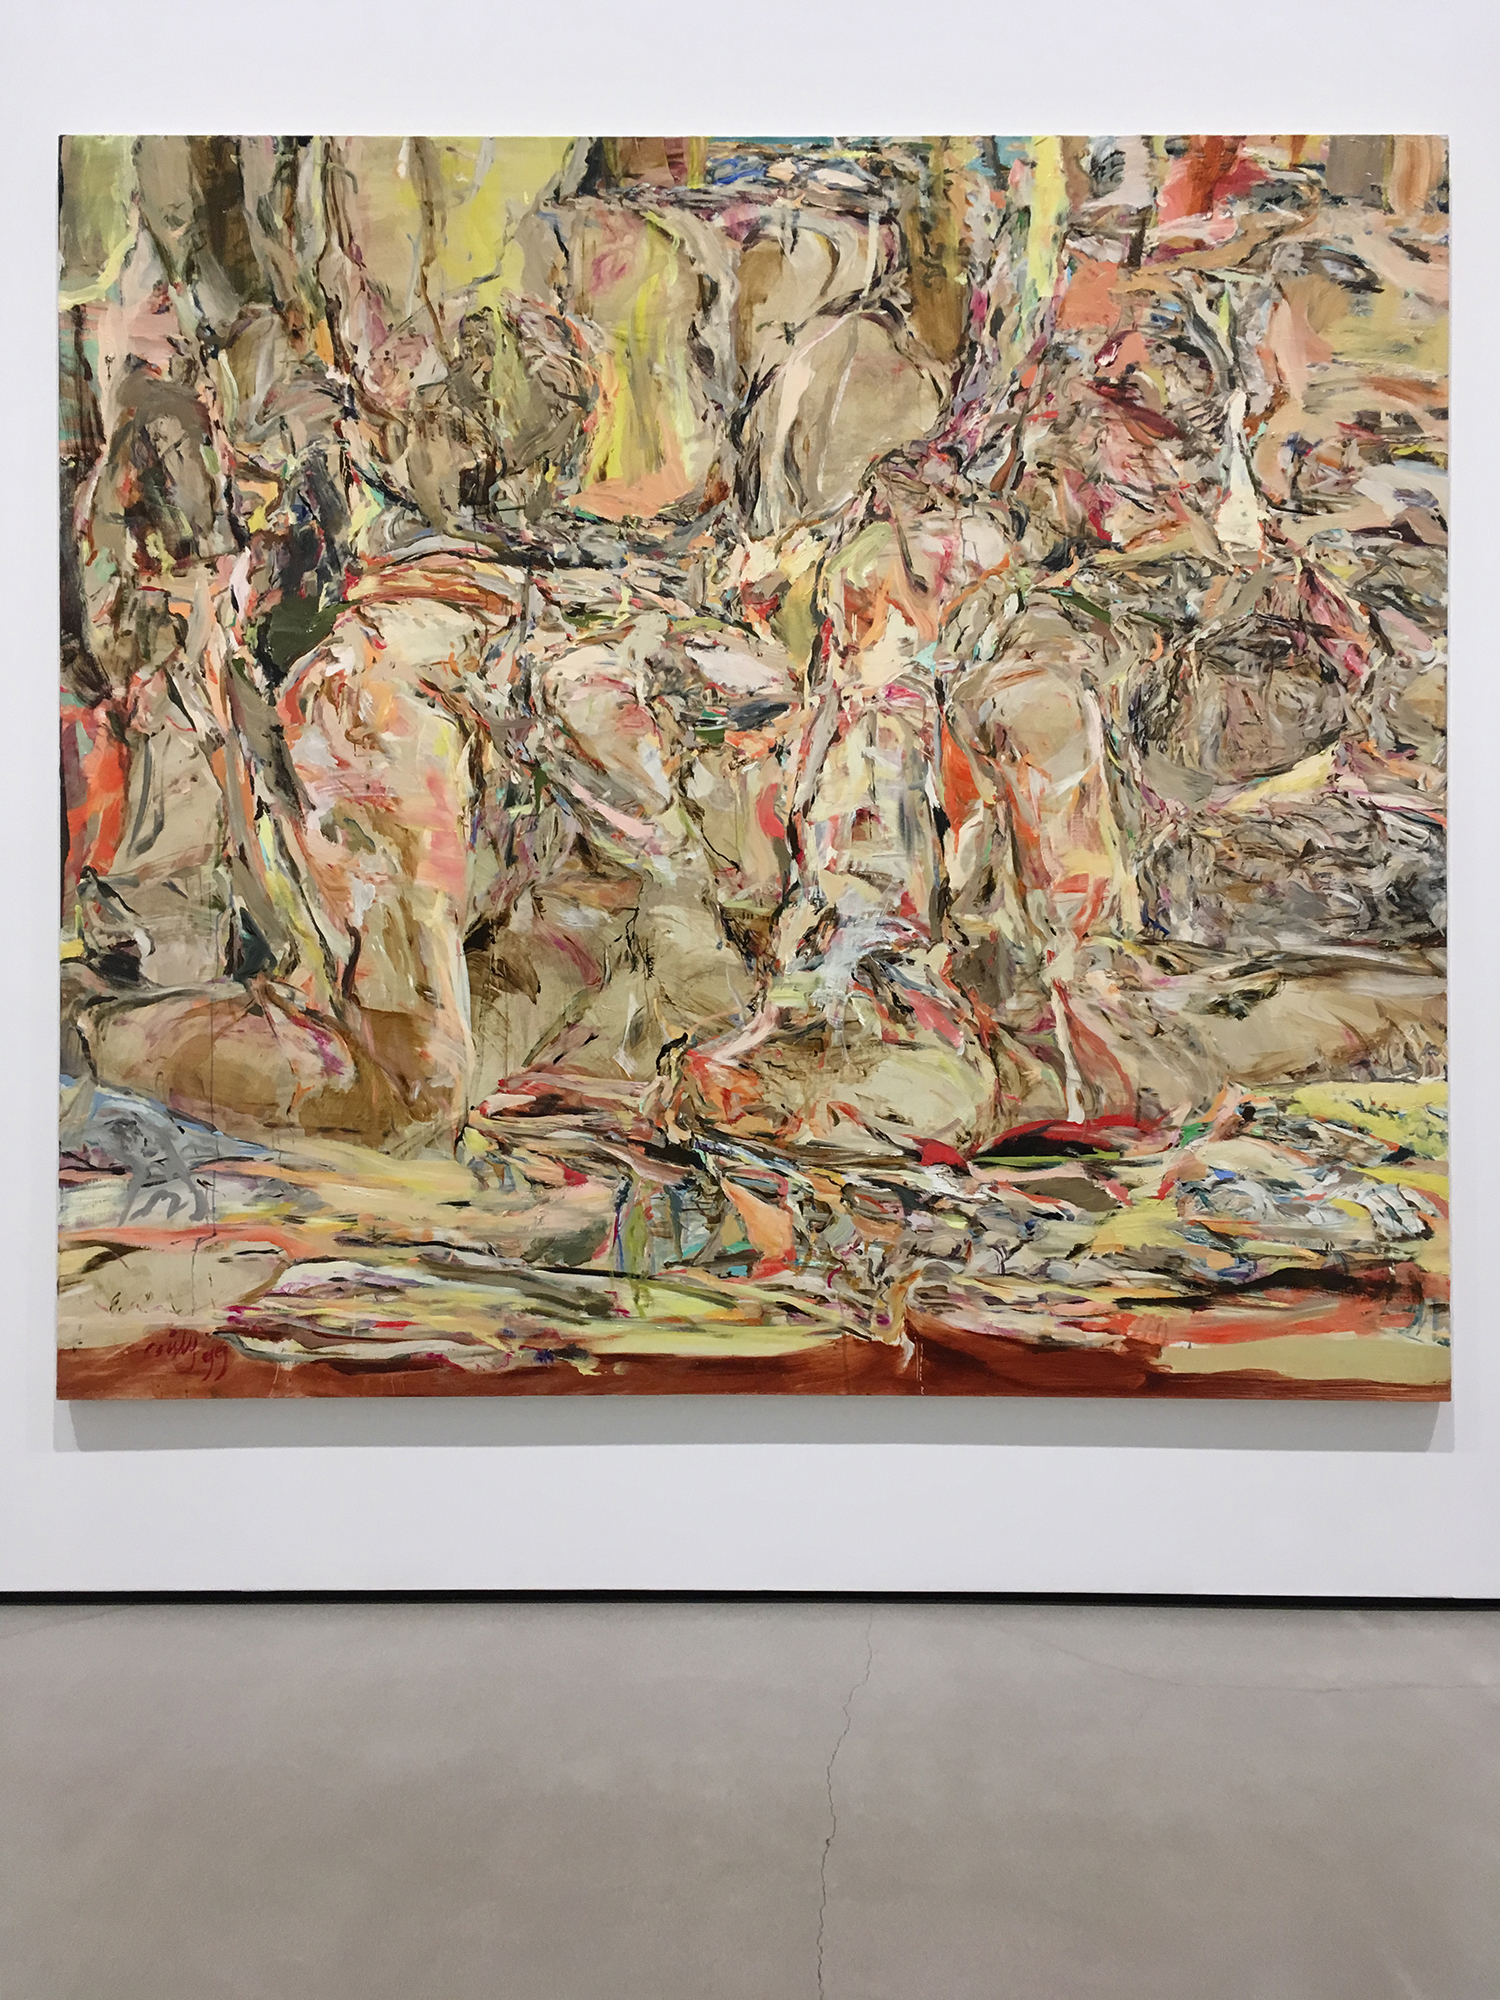 Cecily Brown, Tender is the Night, 1999, Oil on Linen